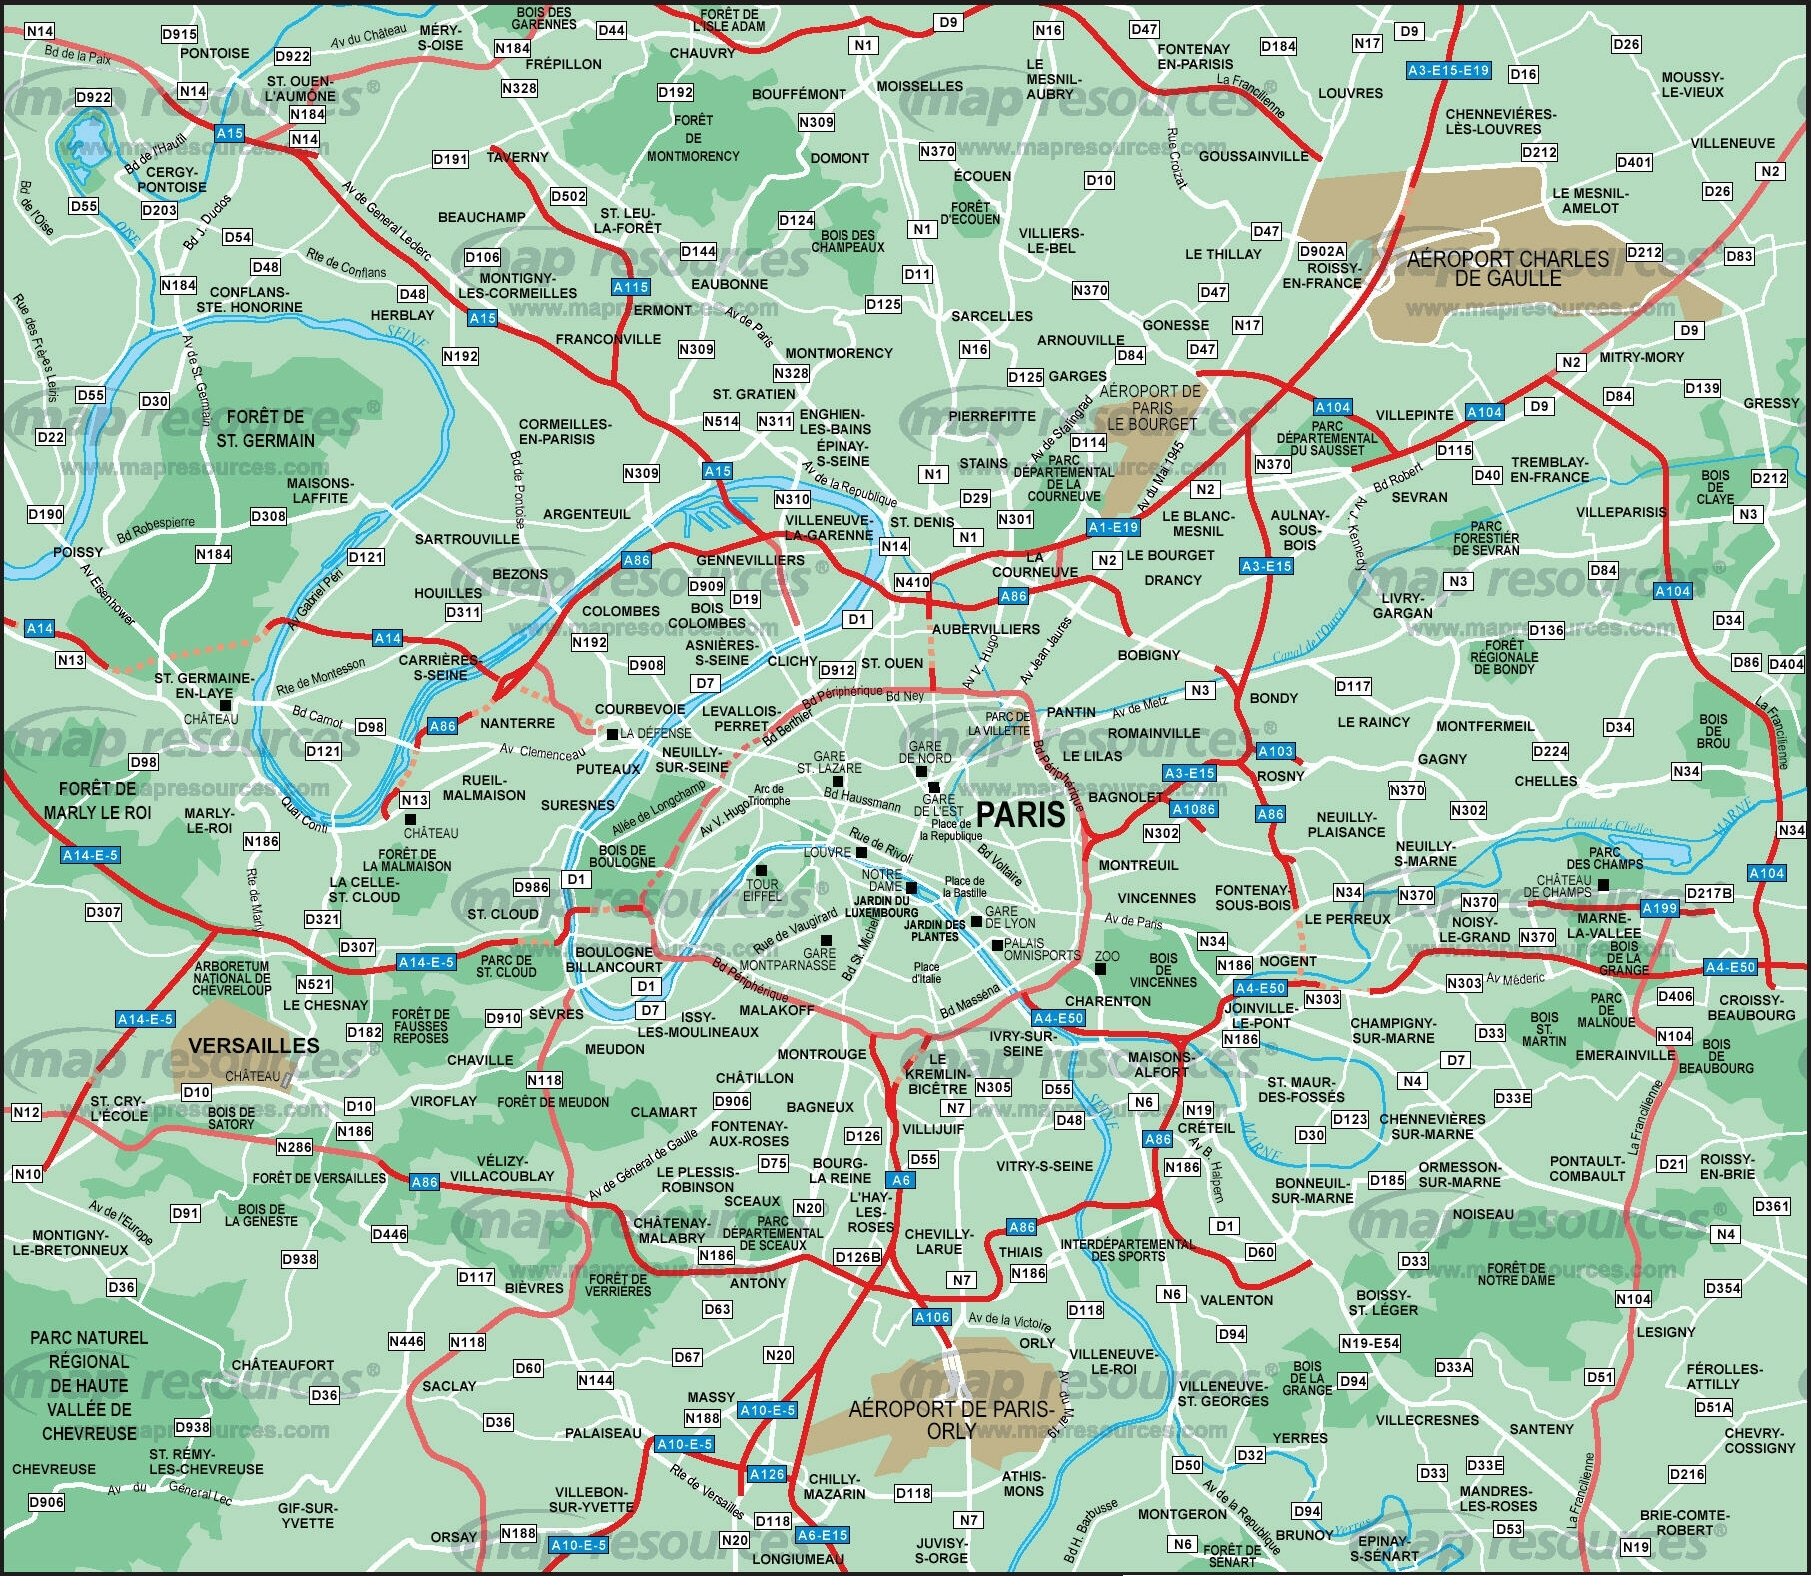 paris city mapmapChina mapshenzhen mapworld mapcap lampsLED – Paris Tourist Map English